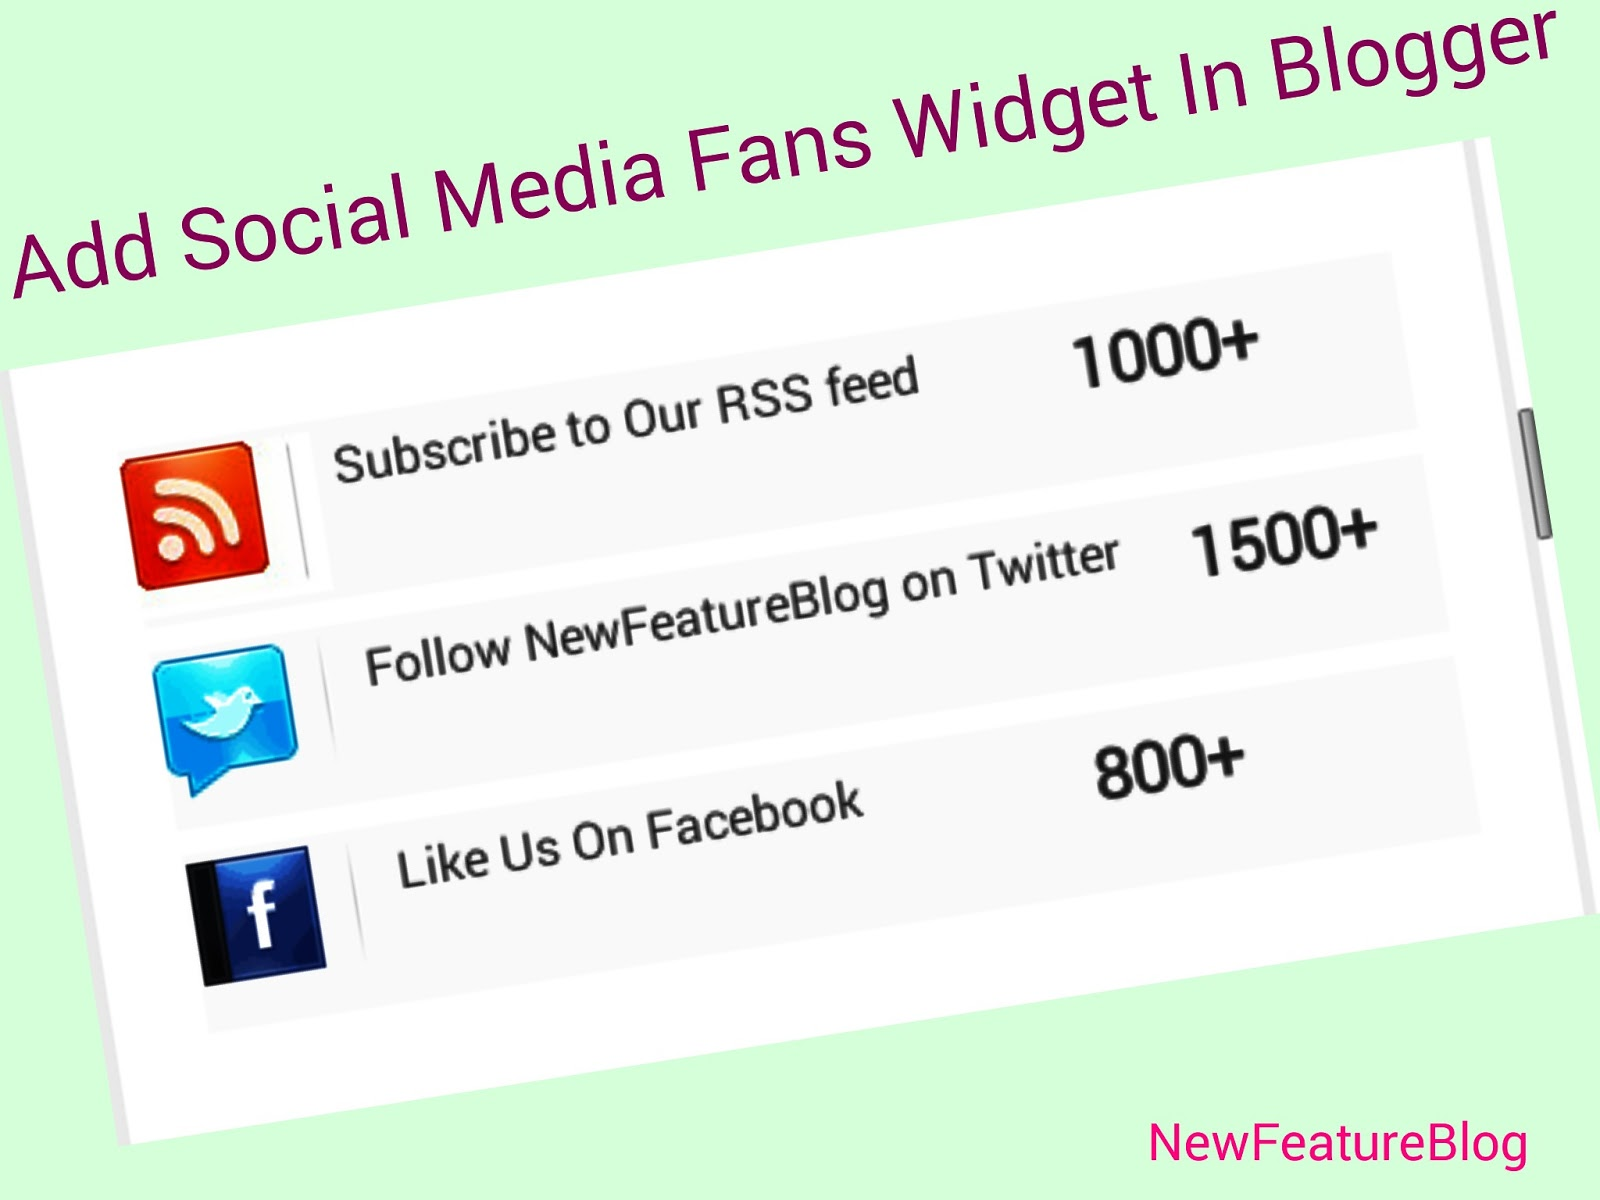 how-to-add-social-media-fans-counter-widget-in-blogger